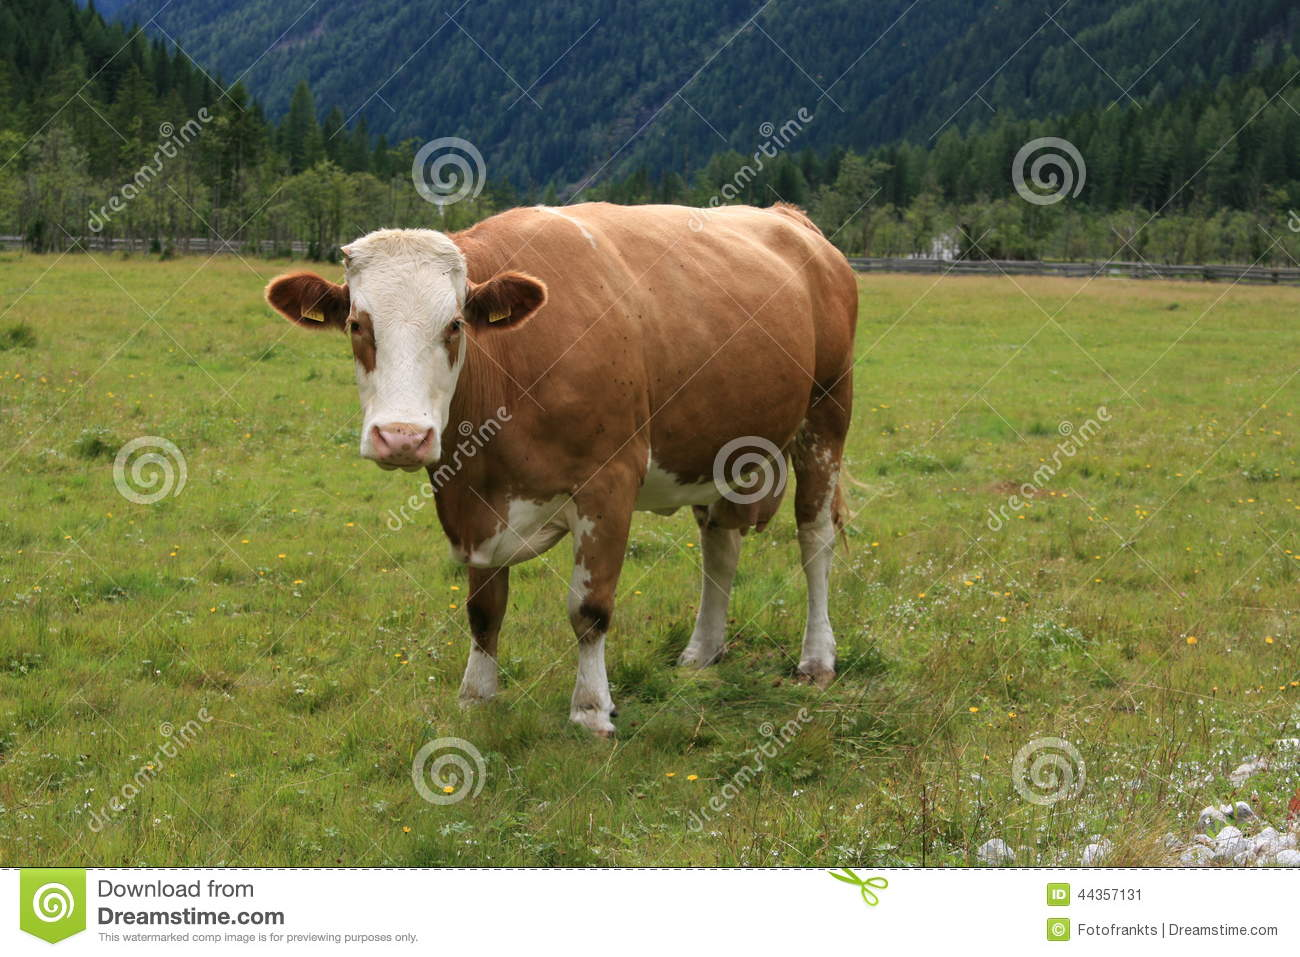 Cattle vocabulary. An intact male bovine is called a bull.A young male bovine is called a bullock.A mature female that has given birth to at least one or two calves is called a cow.A young bovine between birth and weaning is called a interactivebest.ml or more of these young bovines are calves.A female that has never had a calf is called a heifer, (pronounced